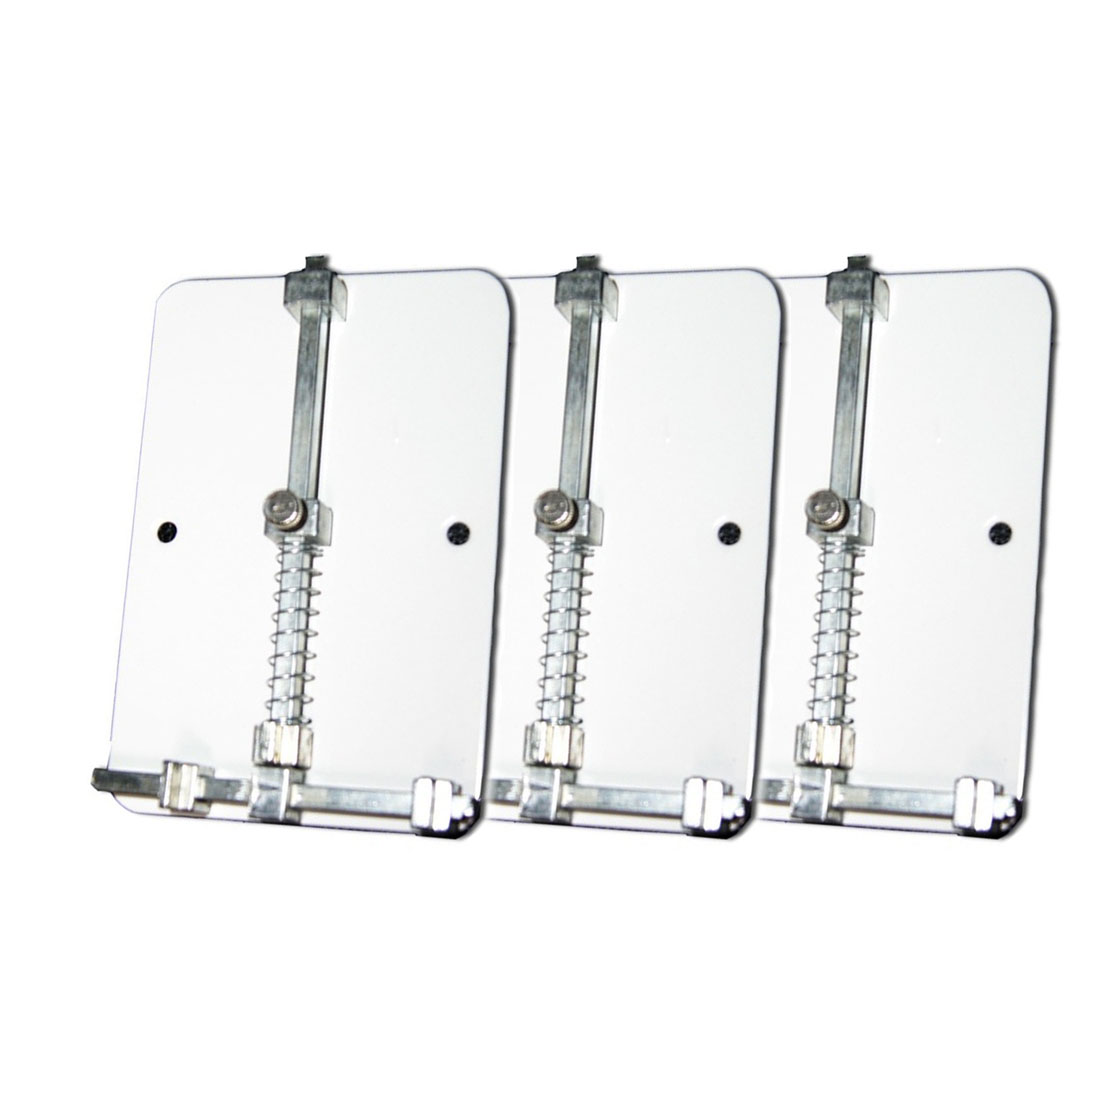 Hand Tool Set 8 12cm Fixture Motherboard Pcb Holder For Mobile Phone Board Repair Tool In Hand